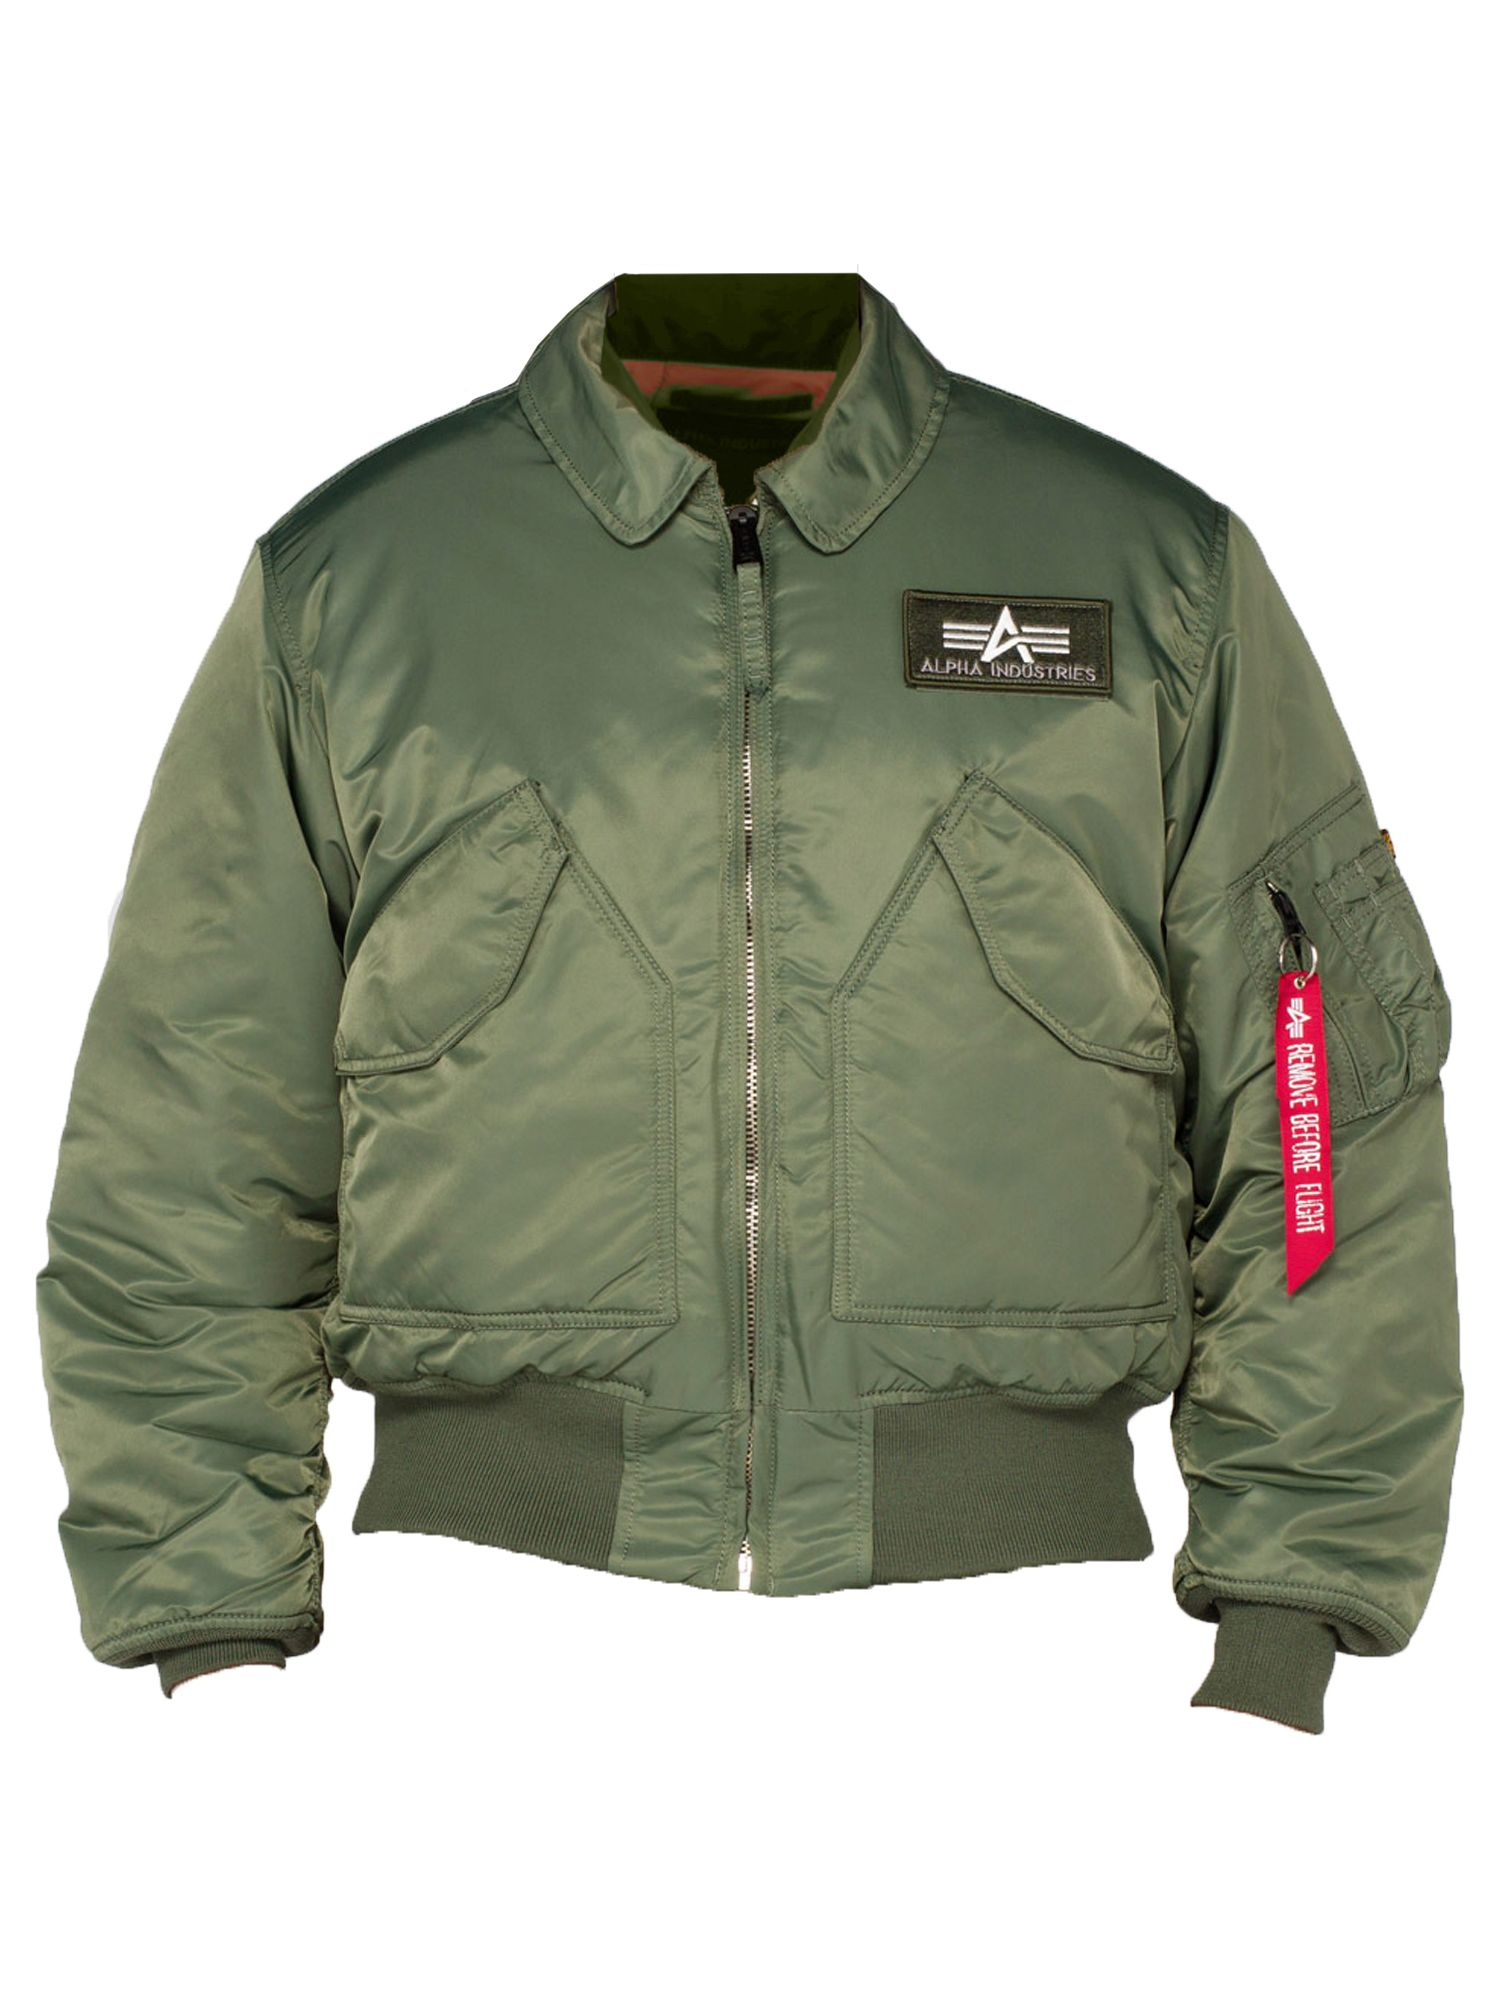 Alpha Industries Men's Alpha Industries CWU 45 Jacket, Sage